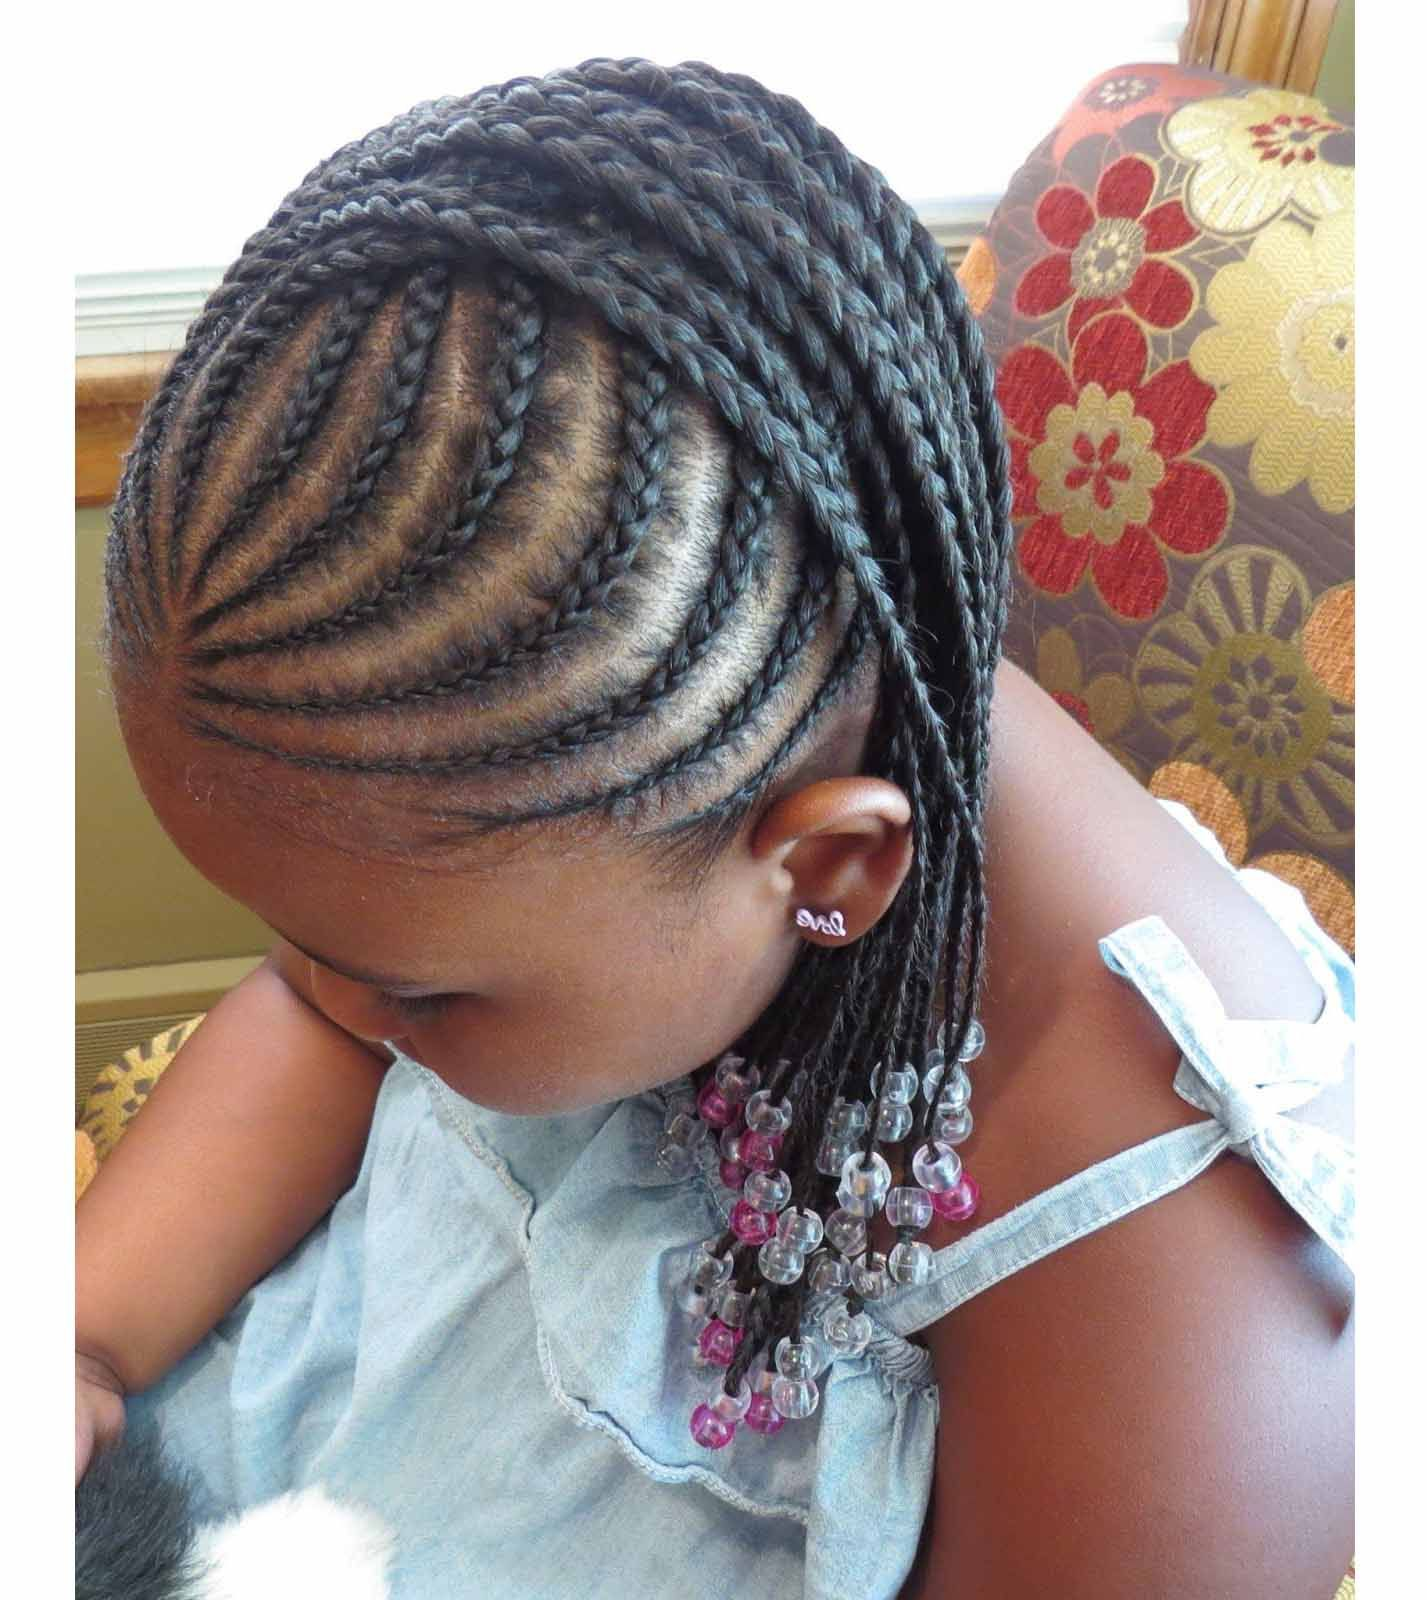 Braided Hairstyles For Little Black Girls With Different Details Kids Braided Hairstyles Black Kids Braids Hairstyles Hair Styles